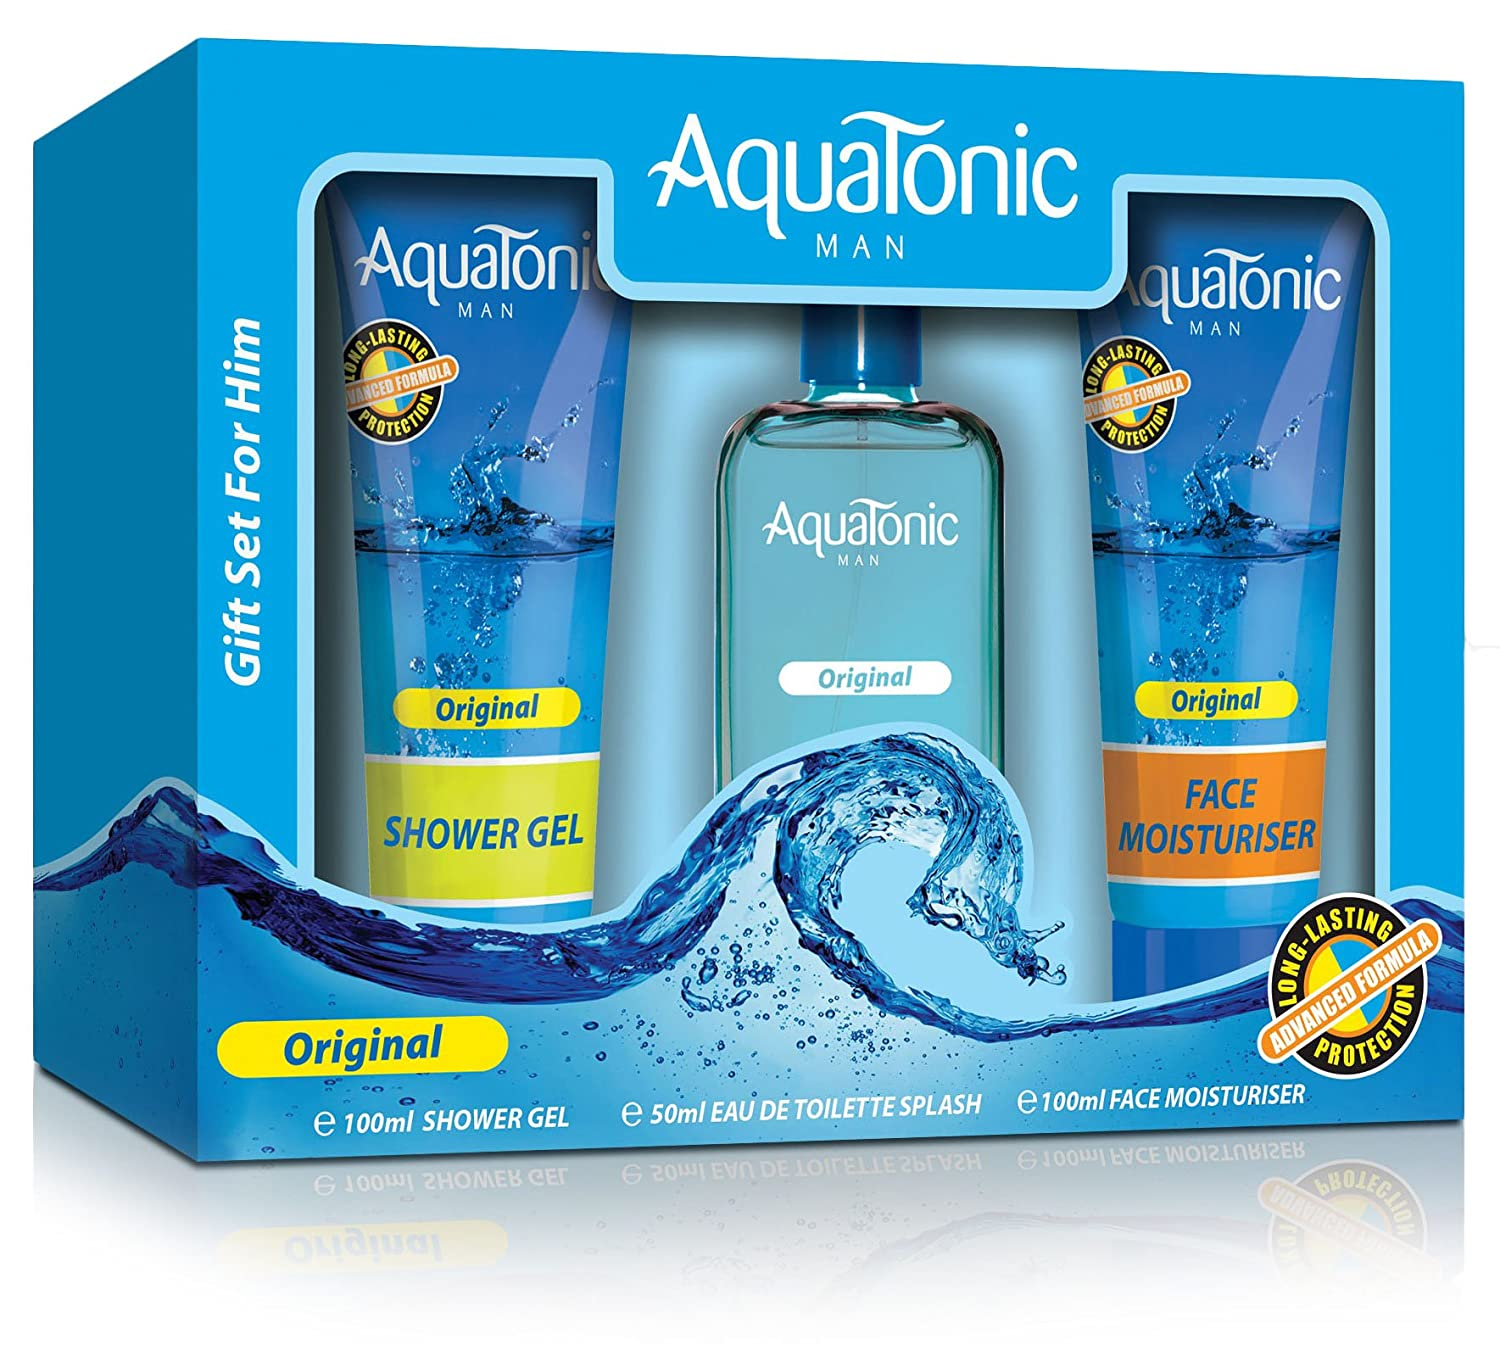 Aquatonic EDT/Shower Gel/Moisturiser Mens Original Gift Set Pack 3-Piece AQUA01